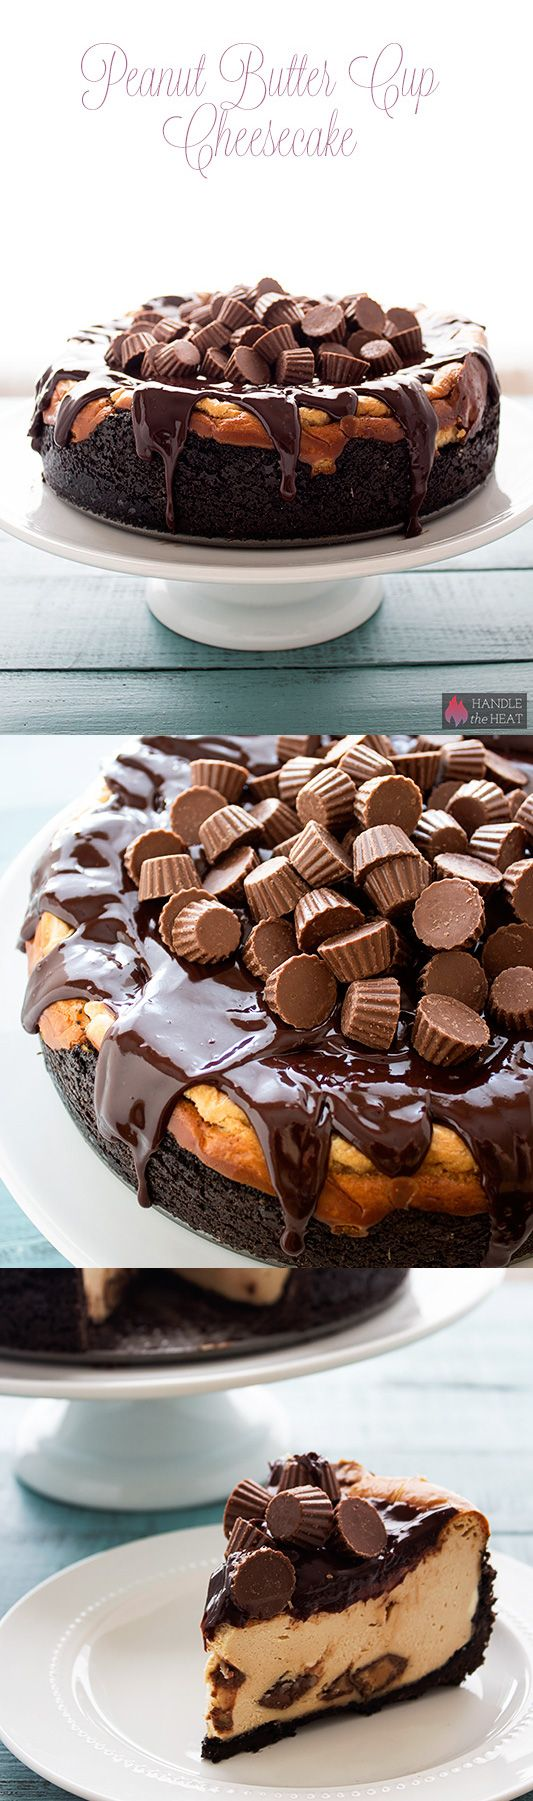 Peanut Butter Cup Cheesecake - out of this world decadence!